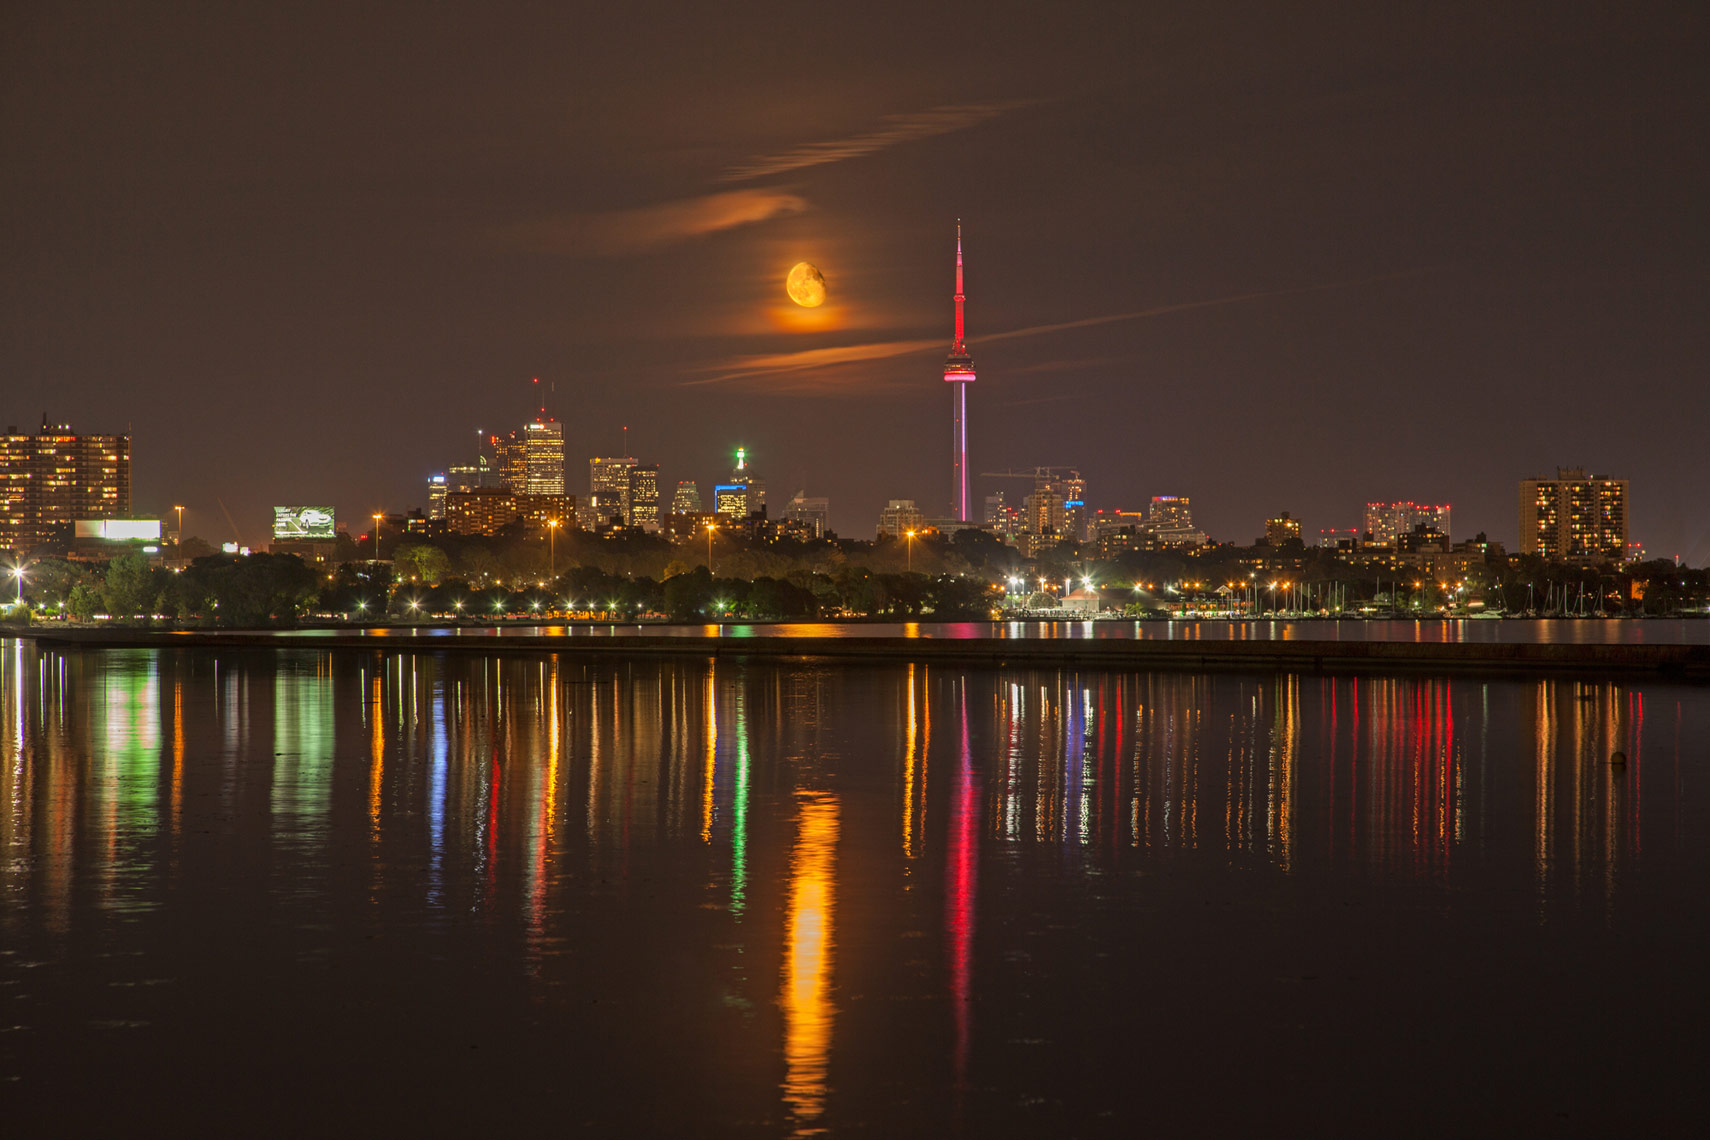 August 24 full moon and CN Tower